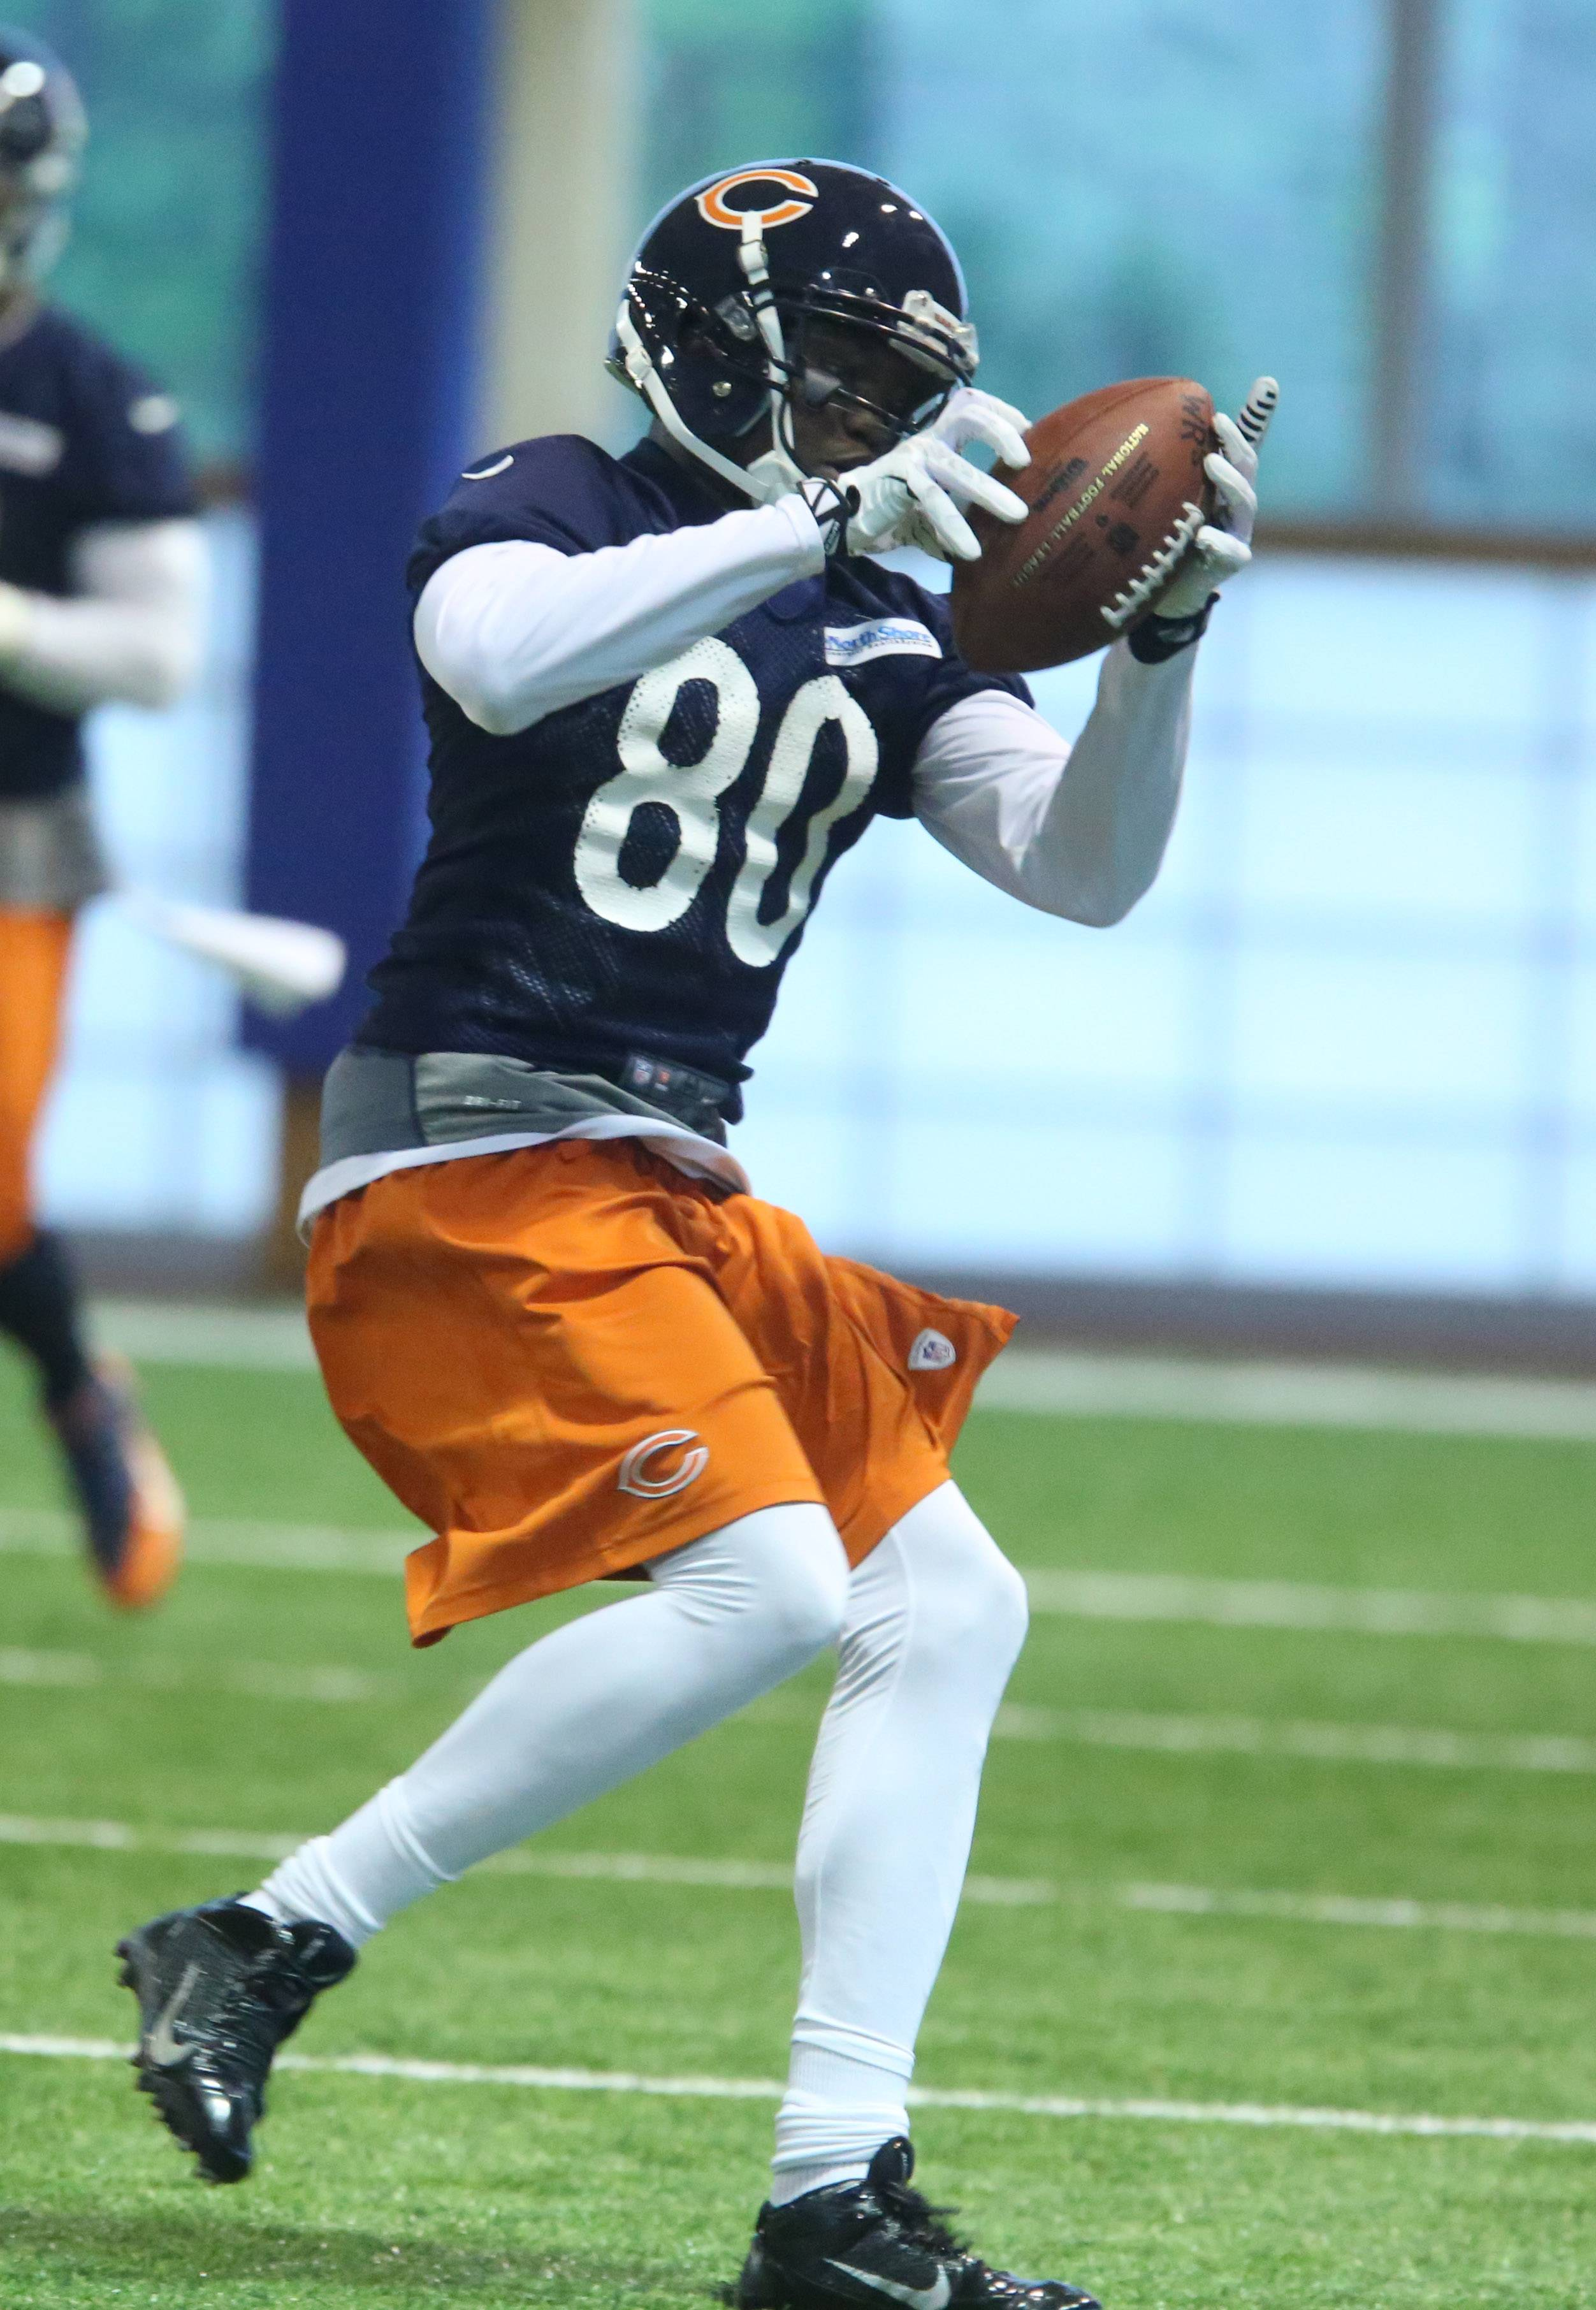 Wide receiver Armanti Edwards is one of four contenders for special teams kick return duty with the Bears. Edwards returned punts for Cleveland and Carolina.